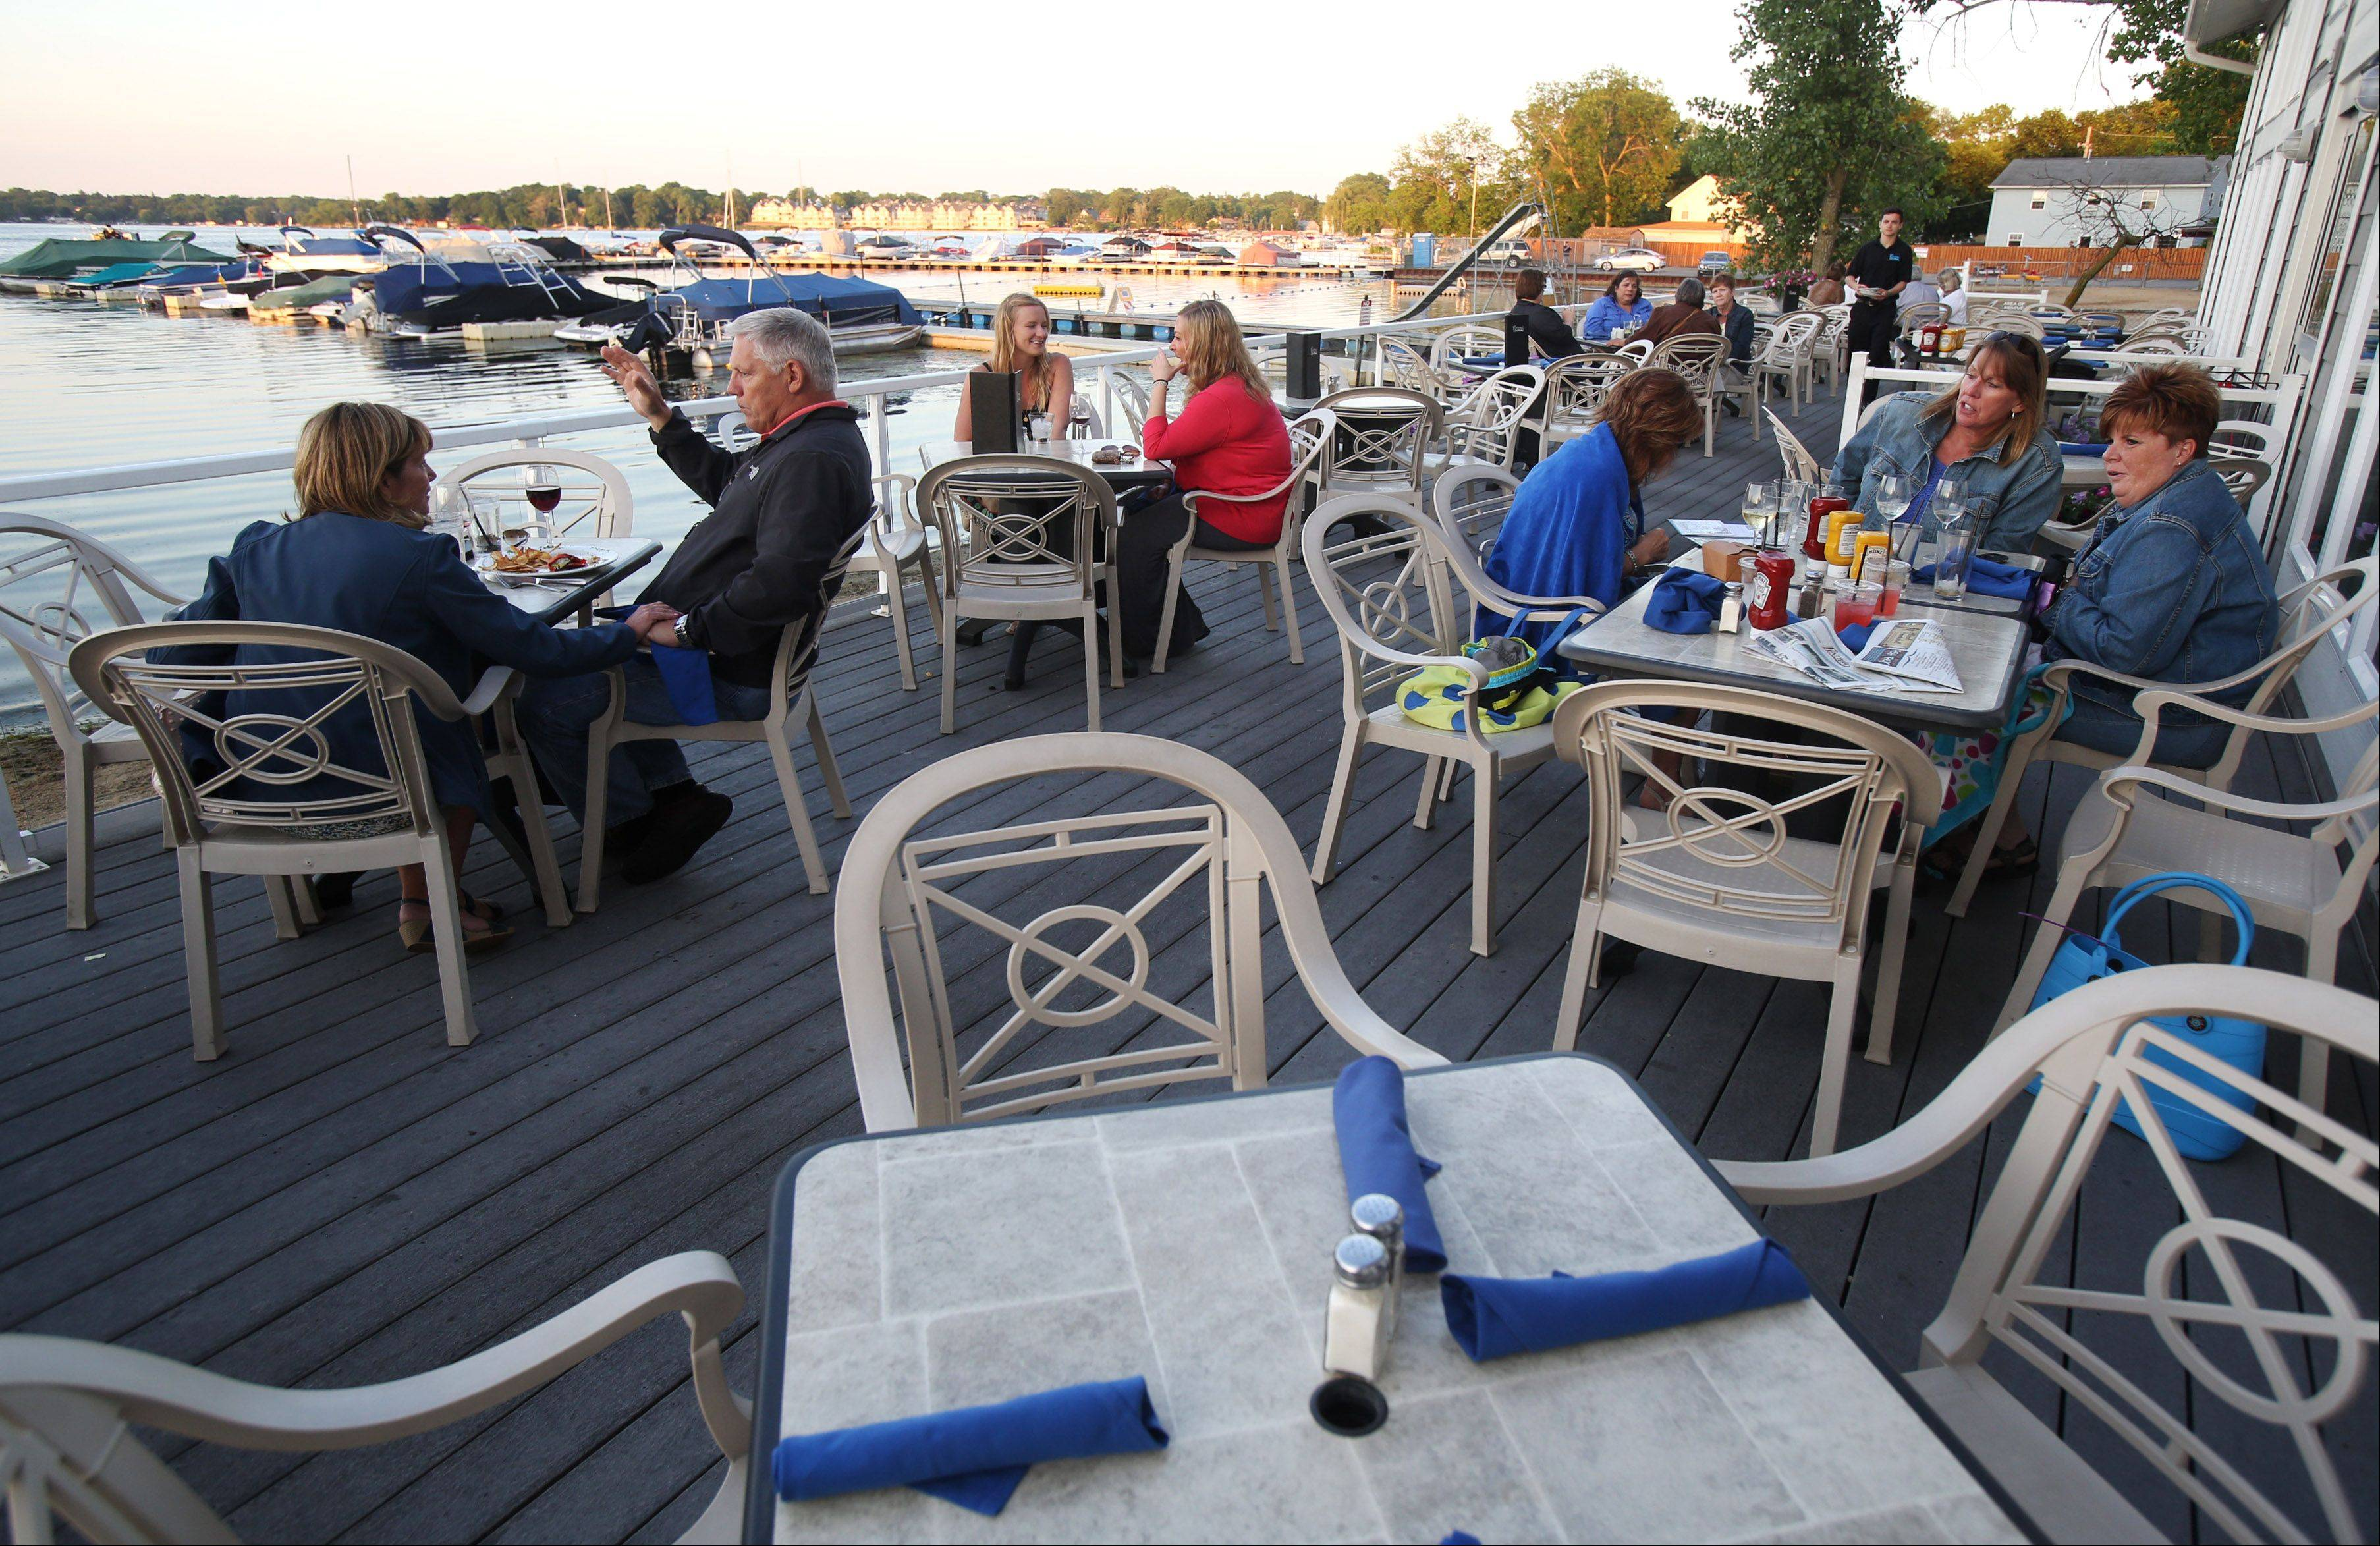 The upper deck at Lindy's Landing in Wauconda provides a nice view of the water.